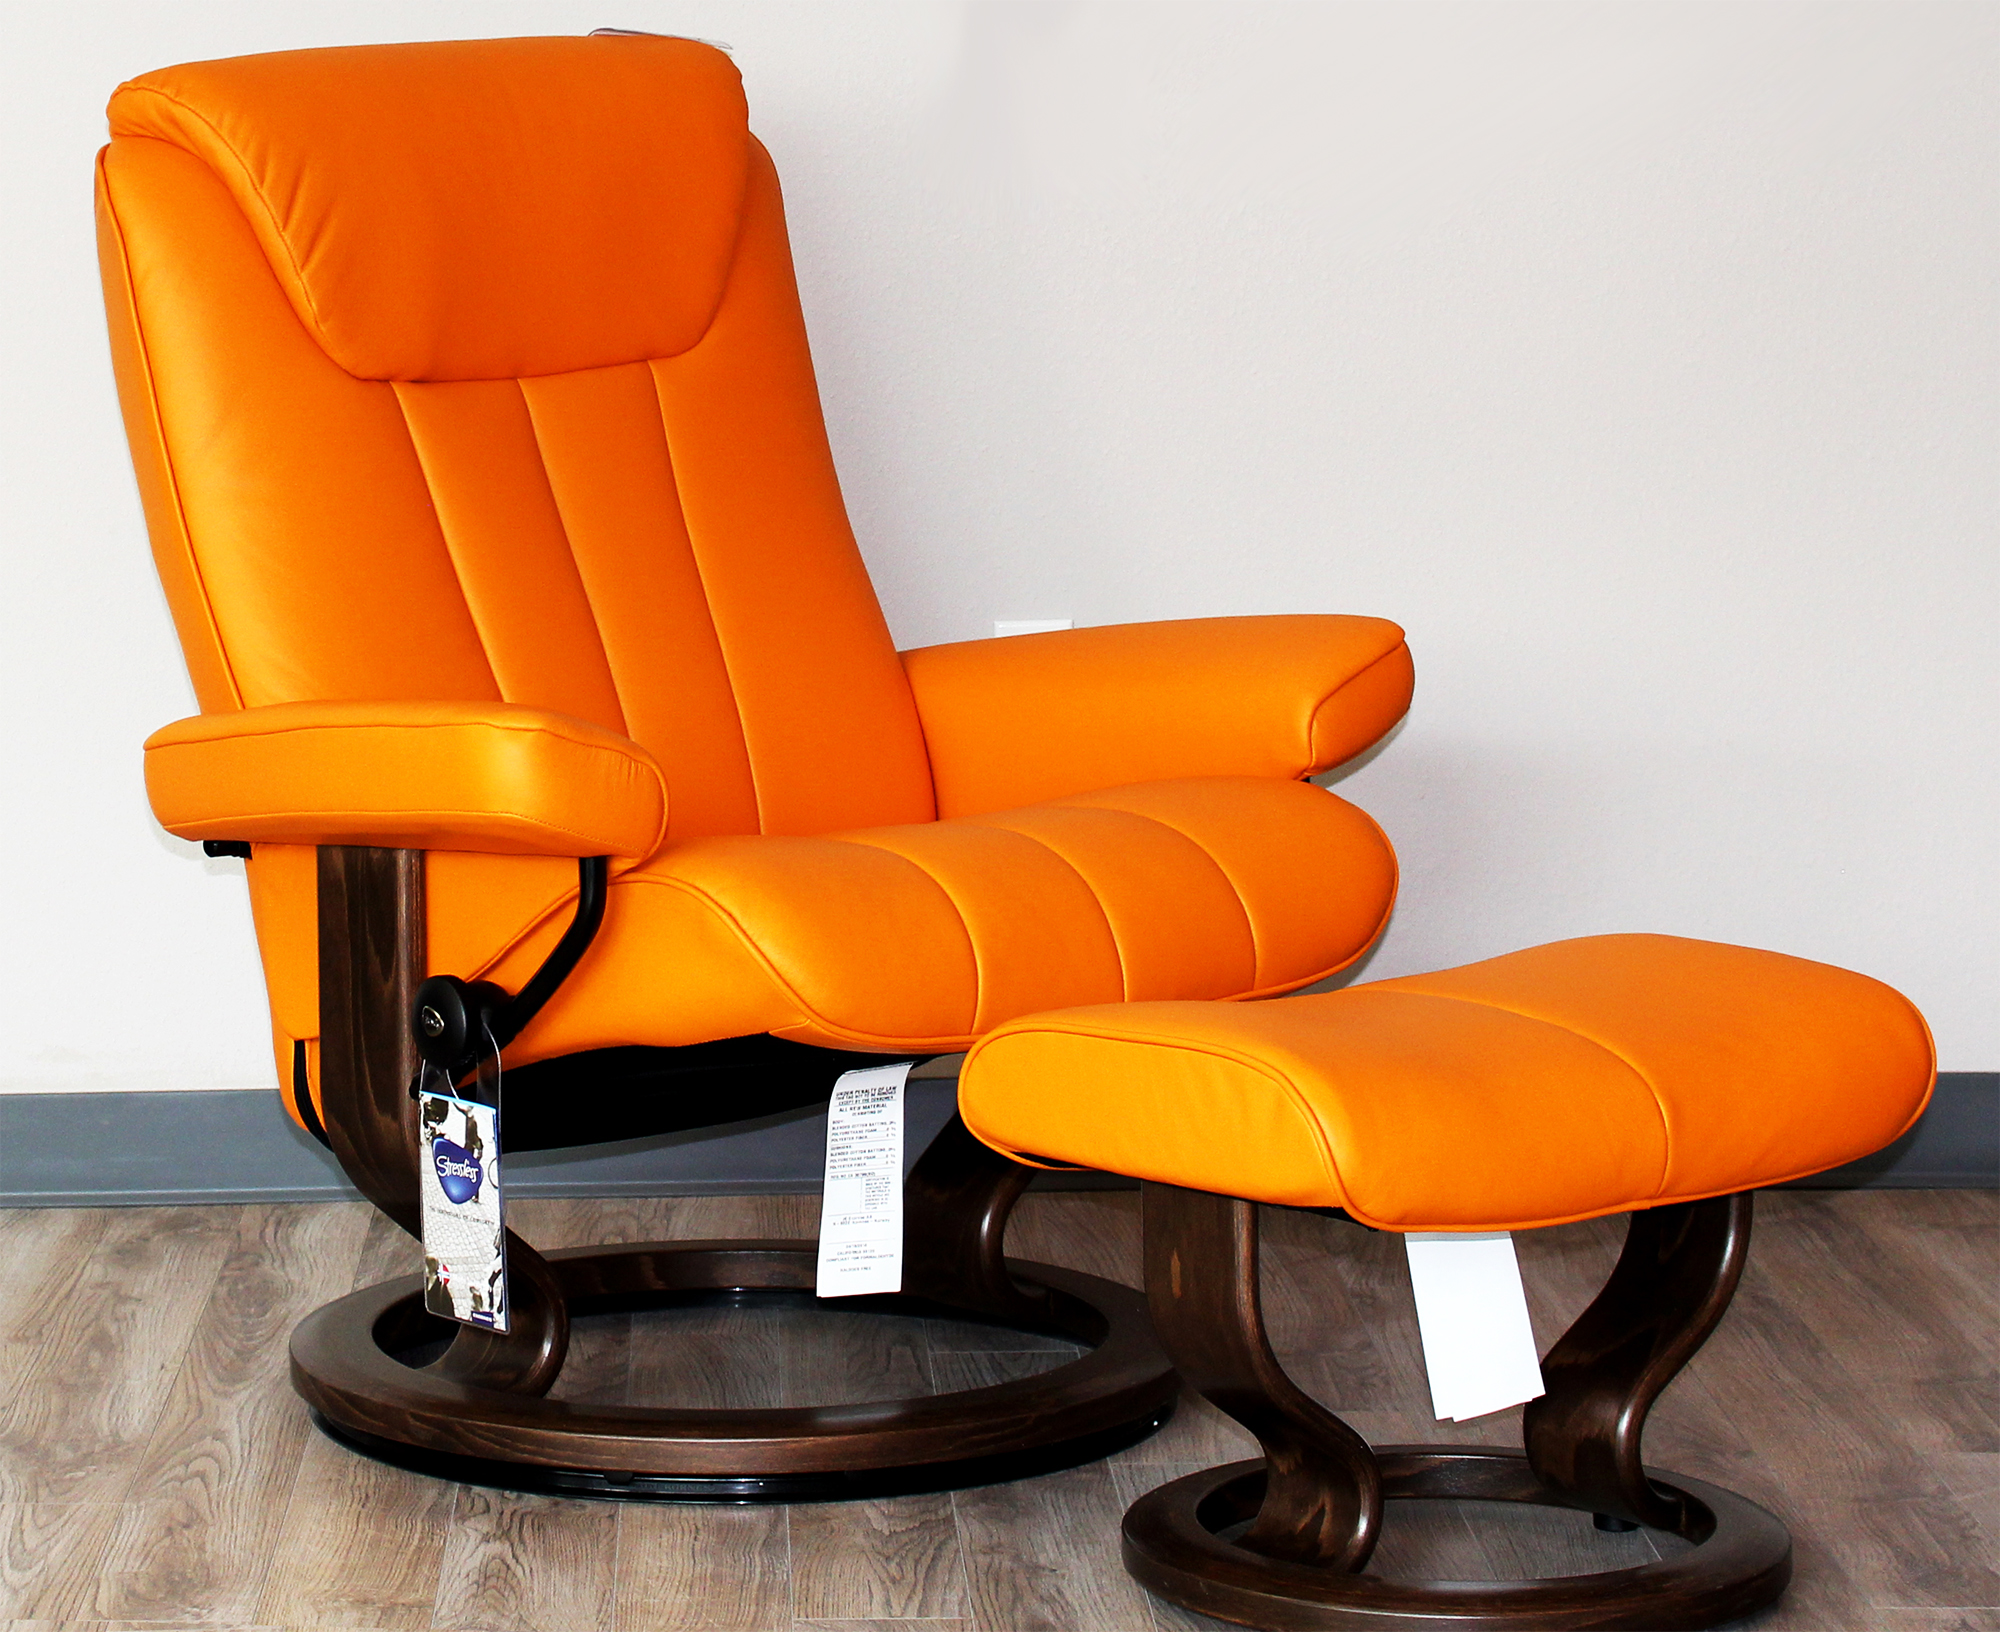 Sressless Stressless Bliss Paloma Clementine Leather Recliner Chair By Ekornes